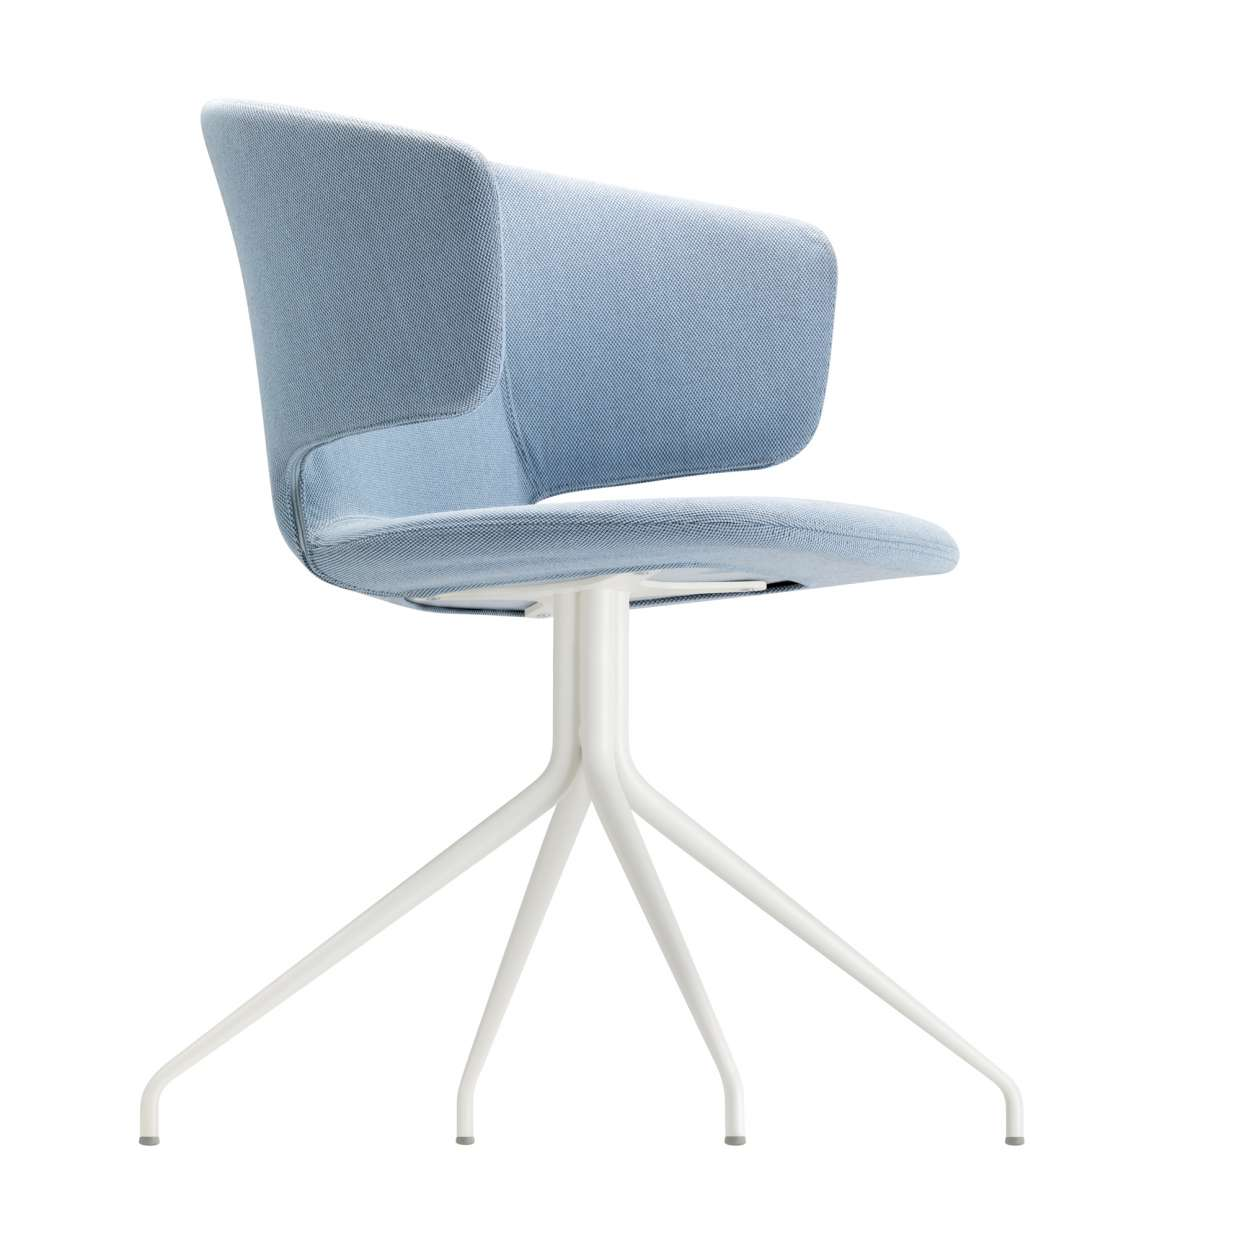 TAORMINA CHAIR - 504 - №77